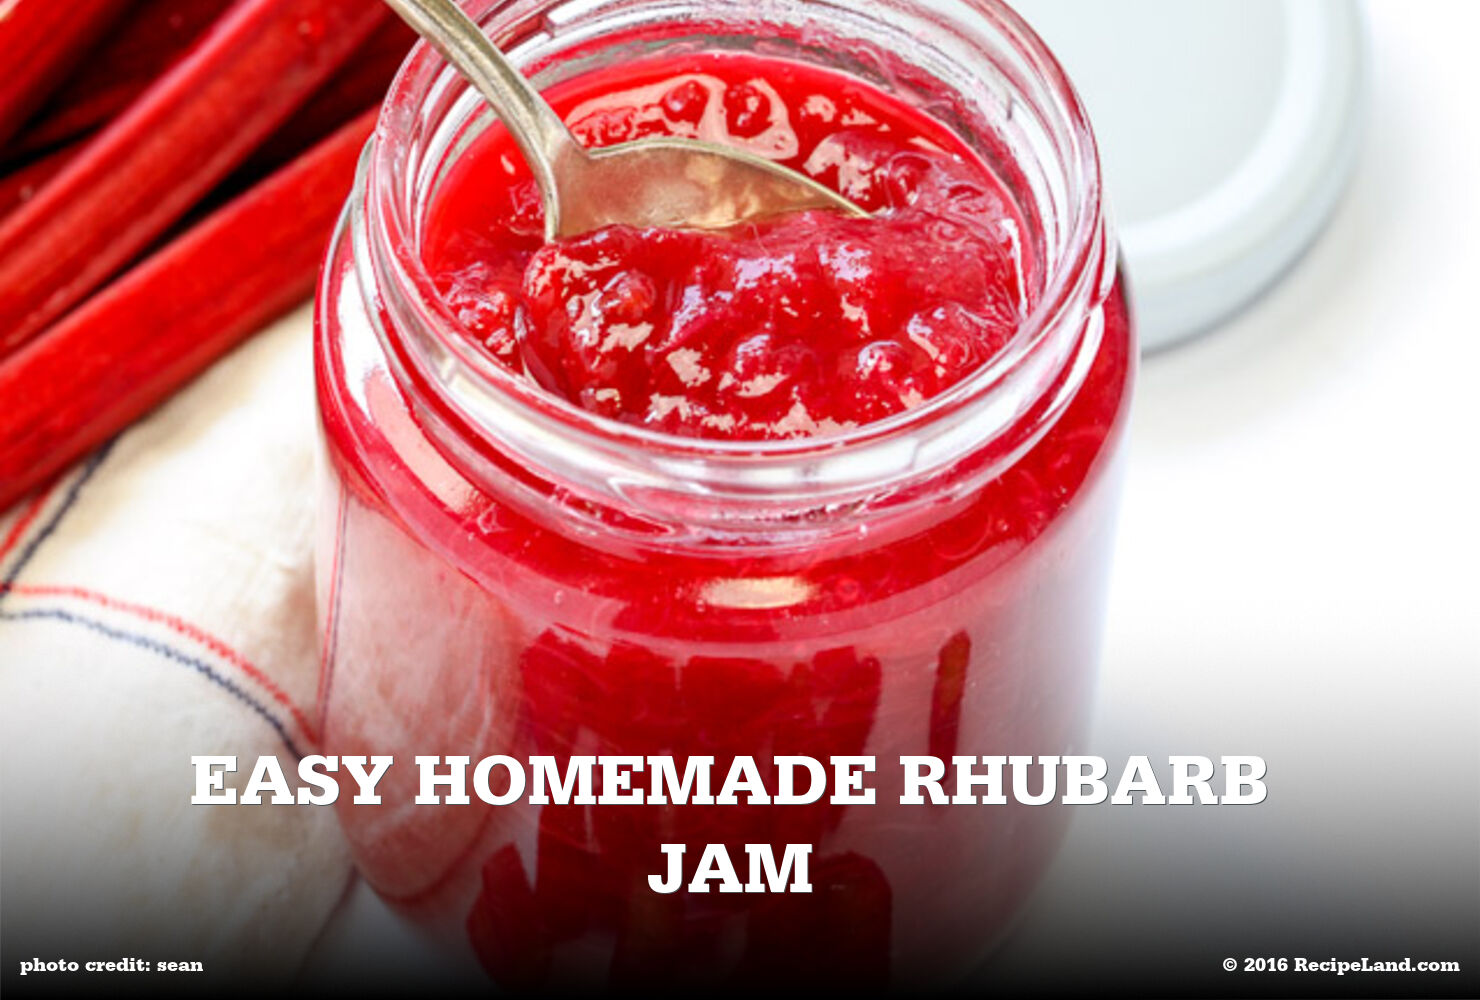 Easy Homemade Rhubarb Jam